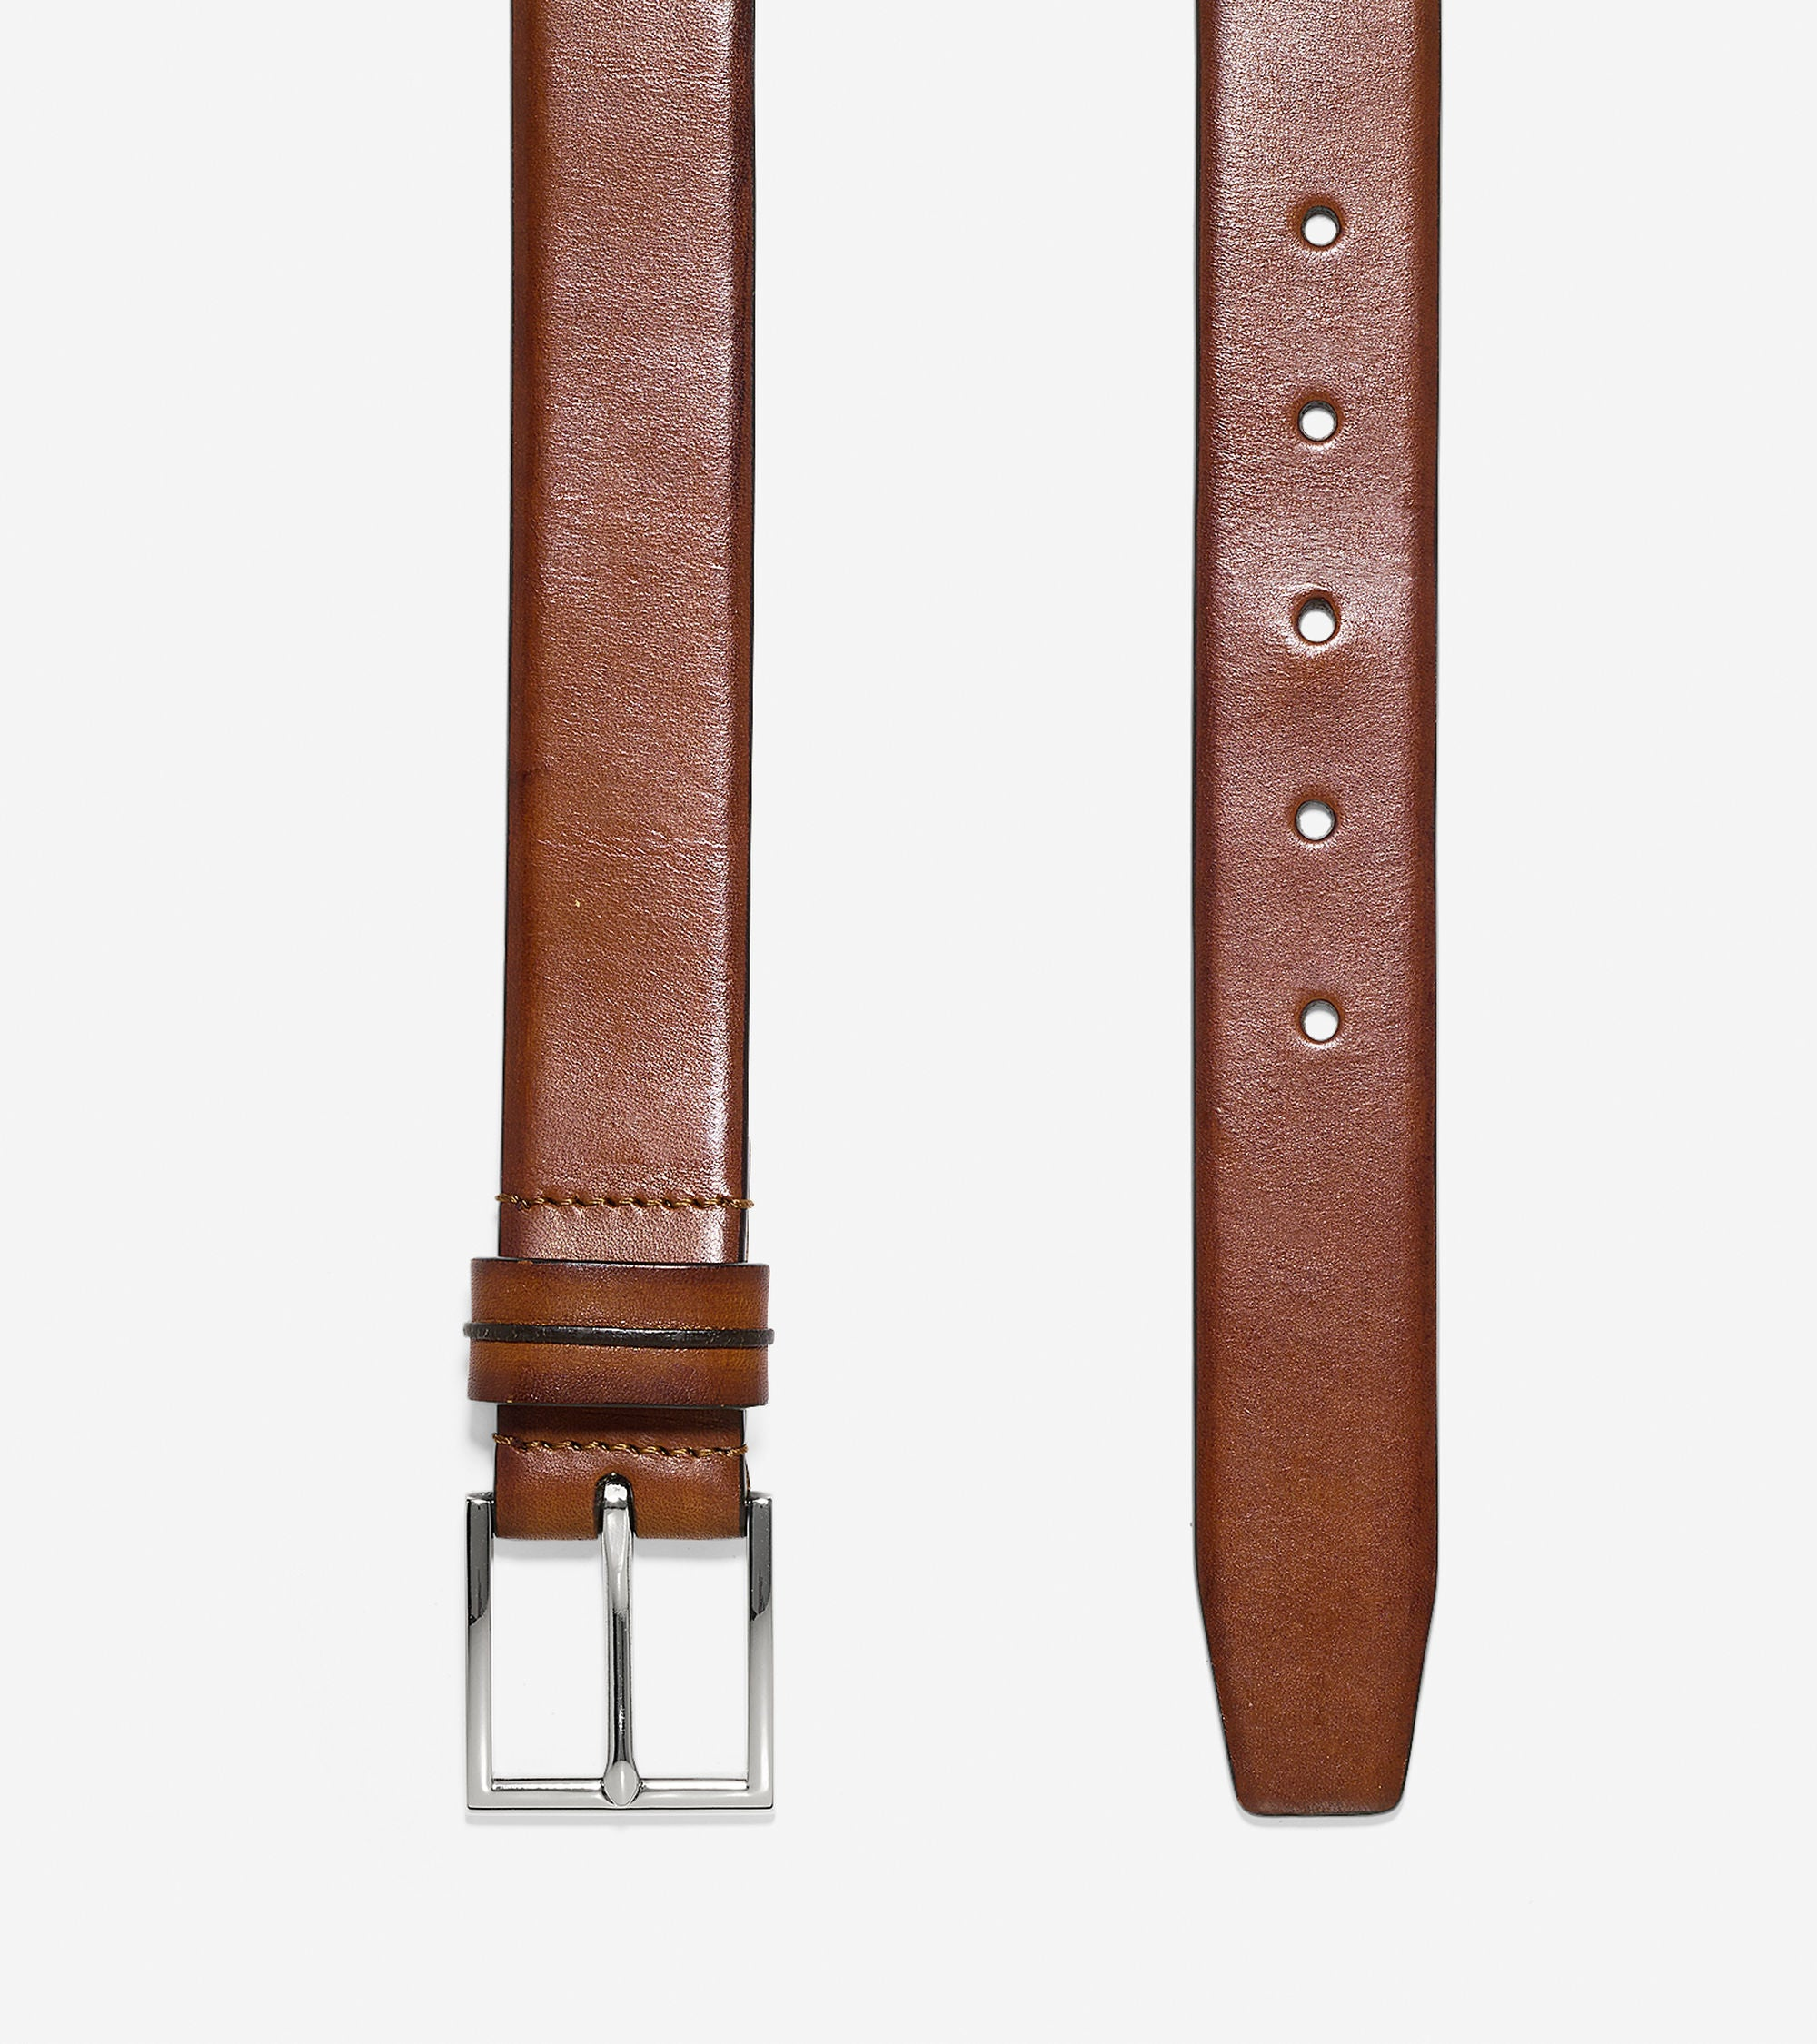 32mm Leather Belt,BELT,Cole Haan, | GentRow.com